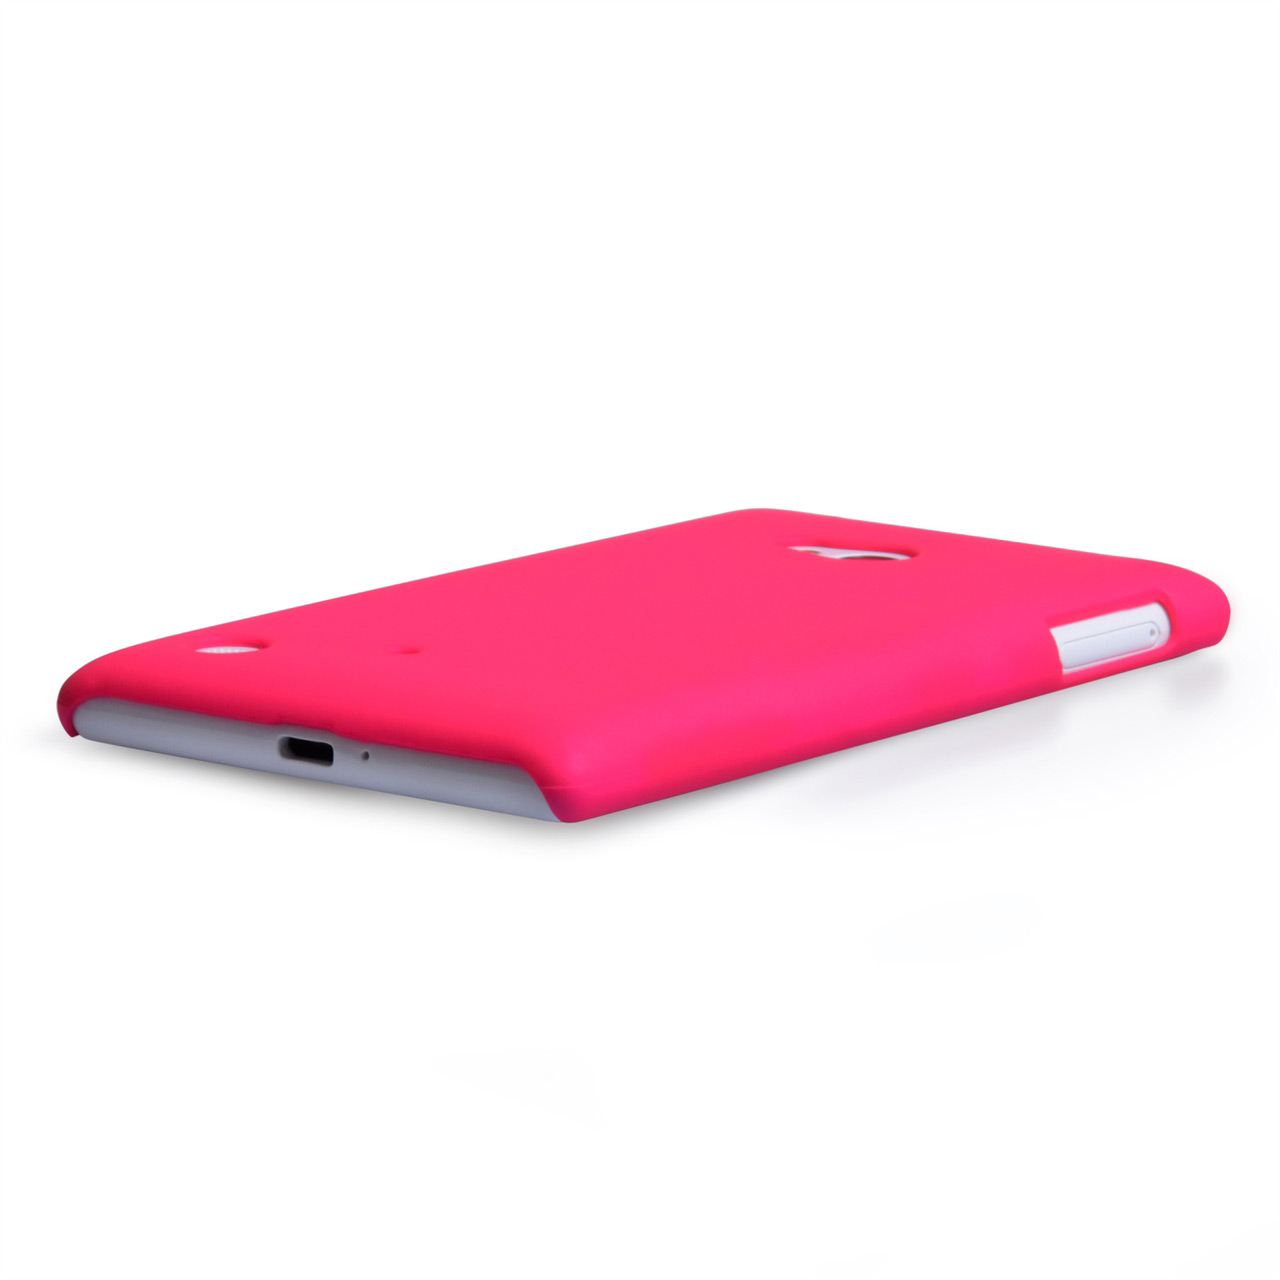 YouSave Accessories Nokia Lumia 720 Hard Hybrid Case - Hot Pink